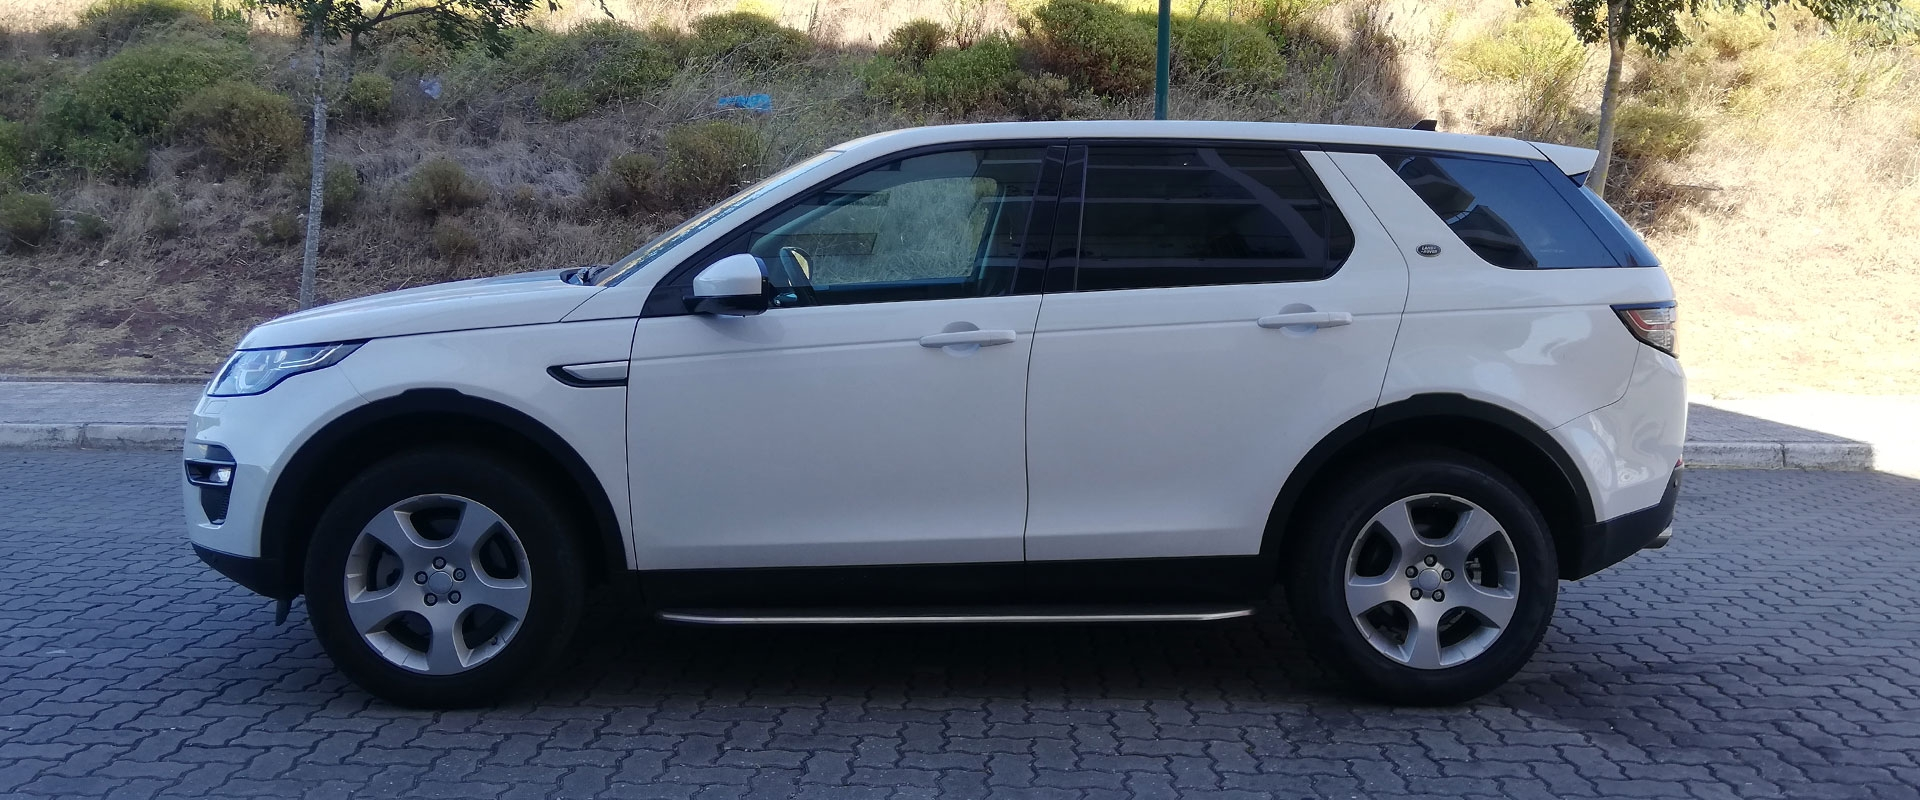 Land Rover Discovery Sport 2.0 ED4 HSE